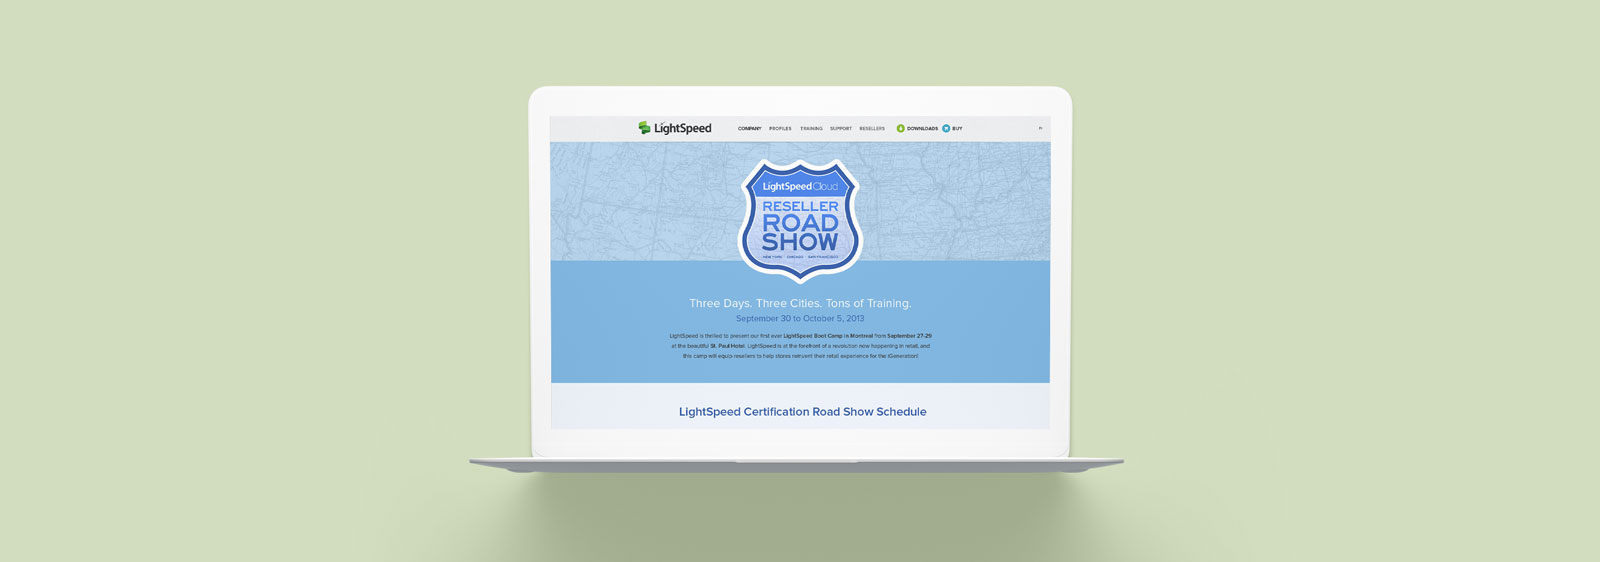 Lightspeed Reseller Road Show Website designed by Noisy Ghost Co.